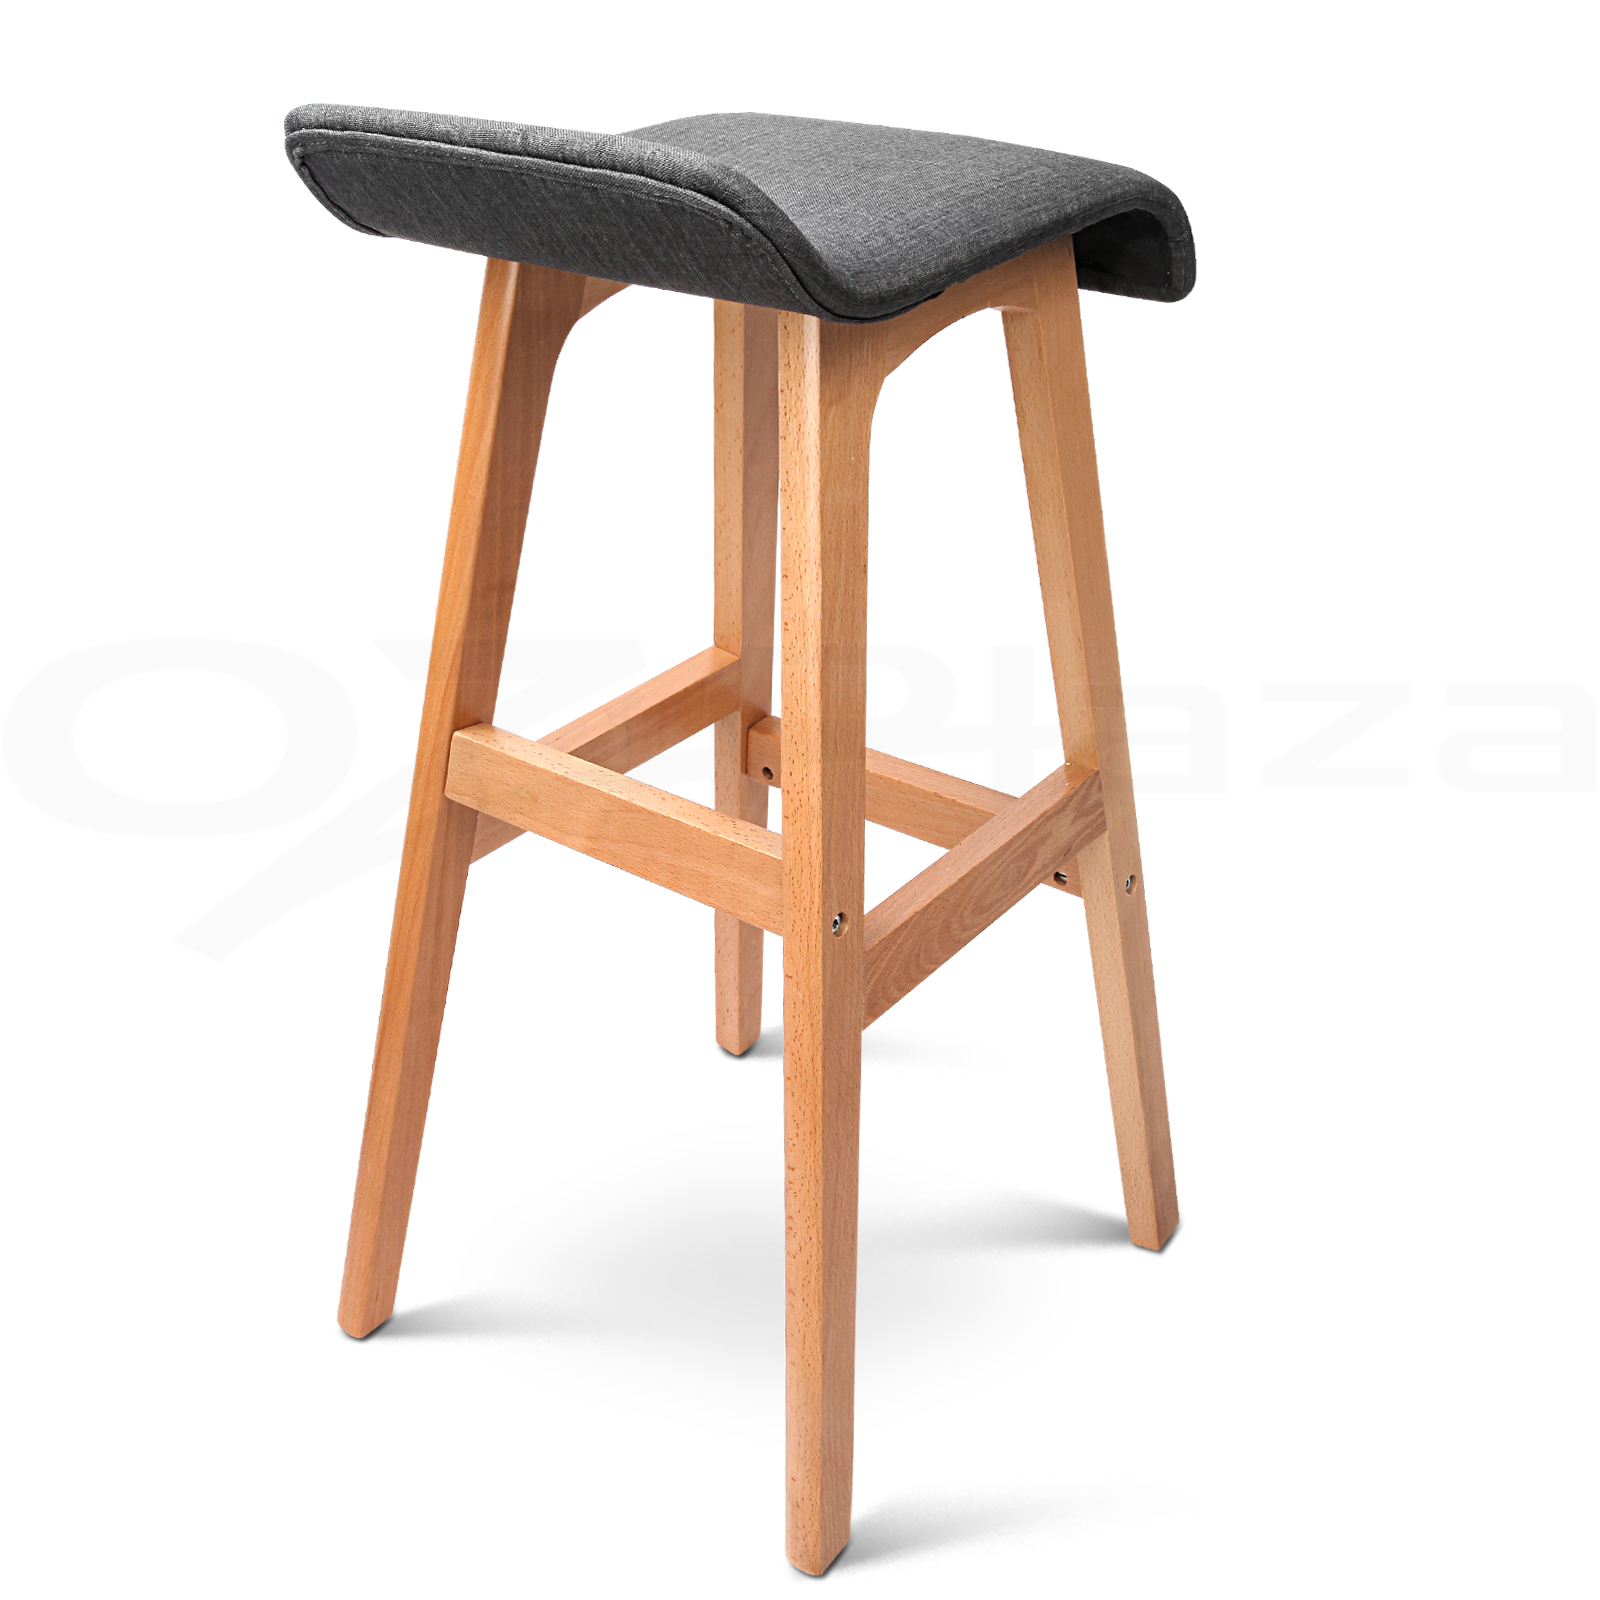 Wooden Kitchen Stools 2x Wooden Bar Stools Kitchen Barstool Fabric Foam Seat